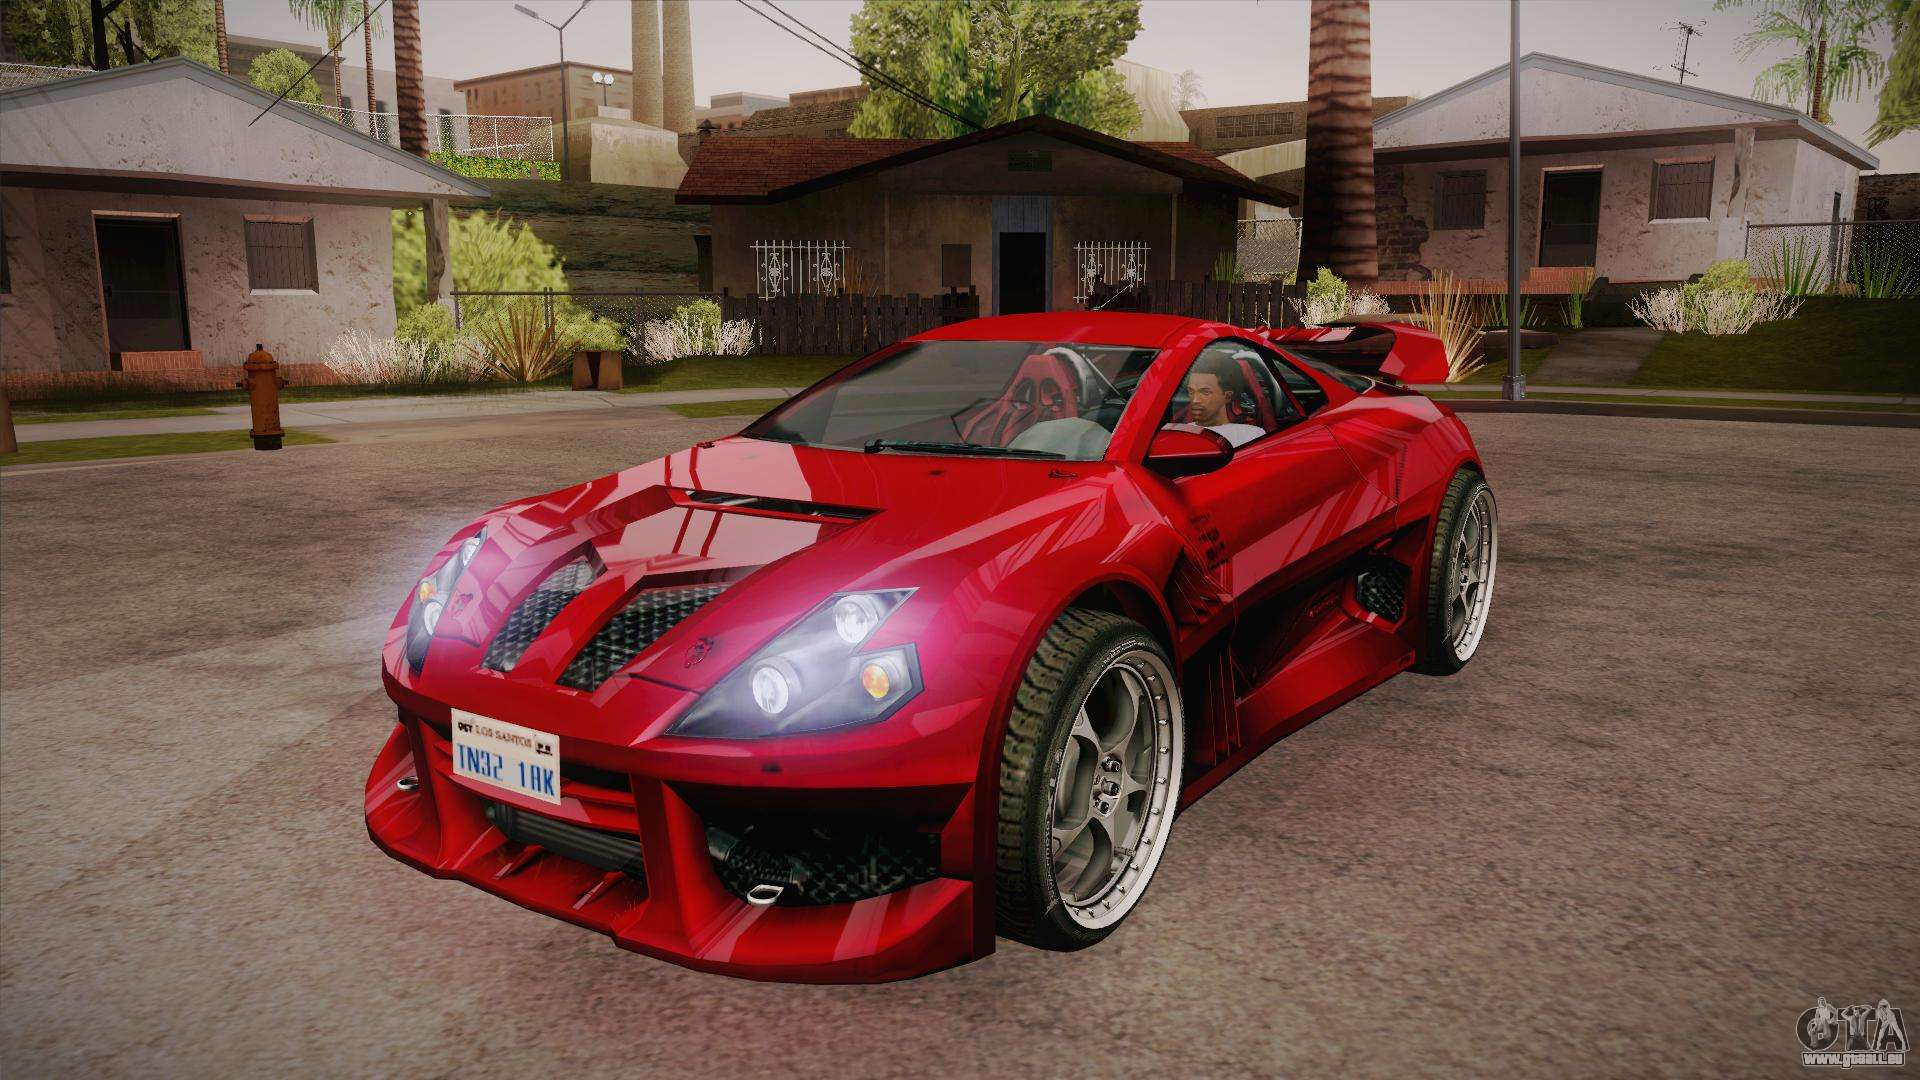 Best Car To Modify In Gta San Andreas